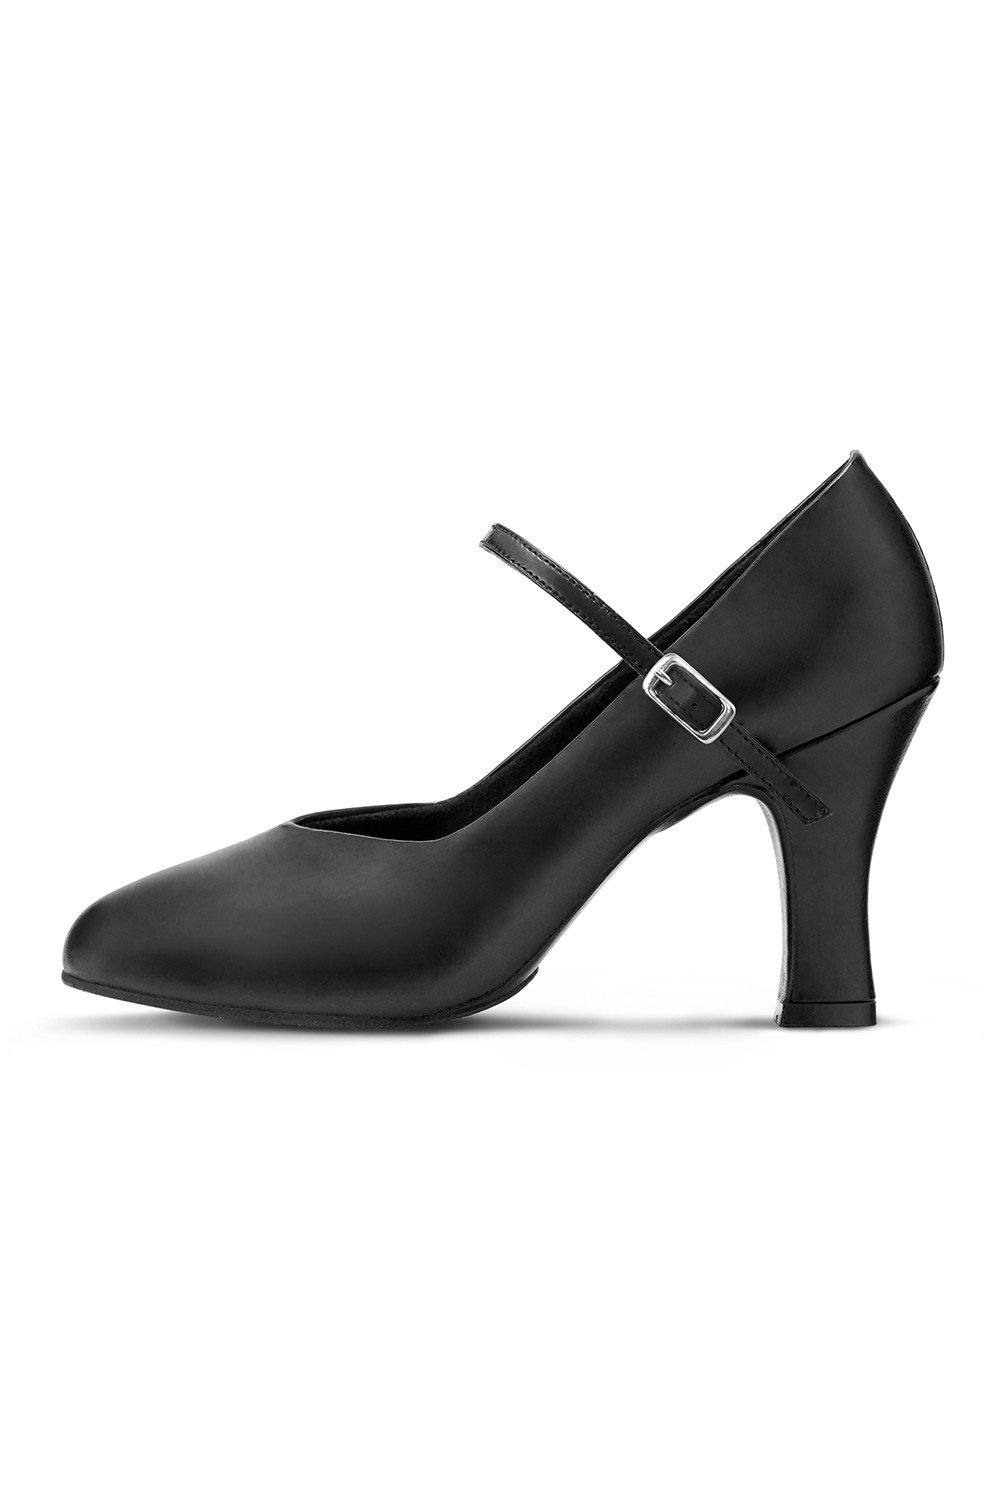 Broadway-hi Women's Character Shoes